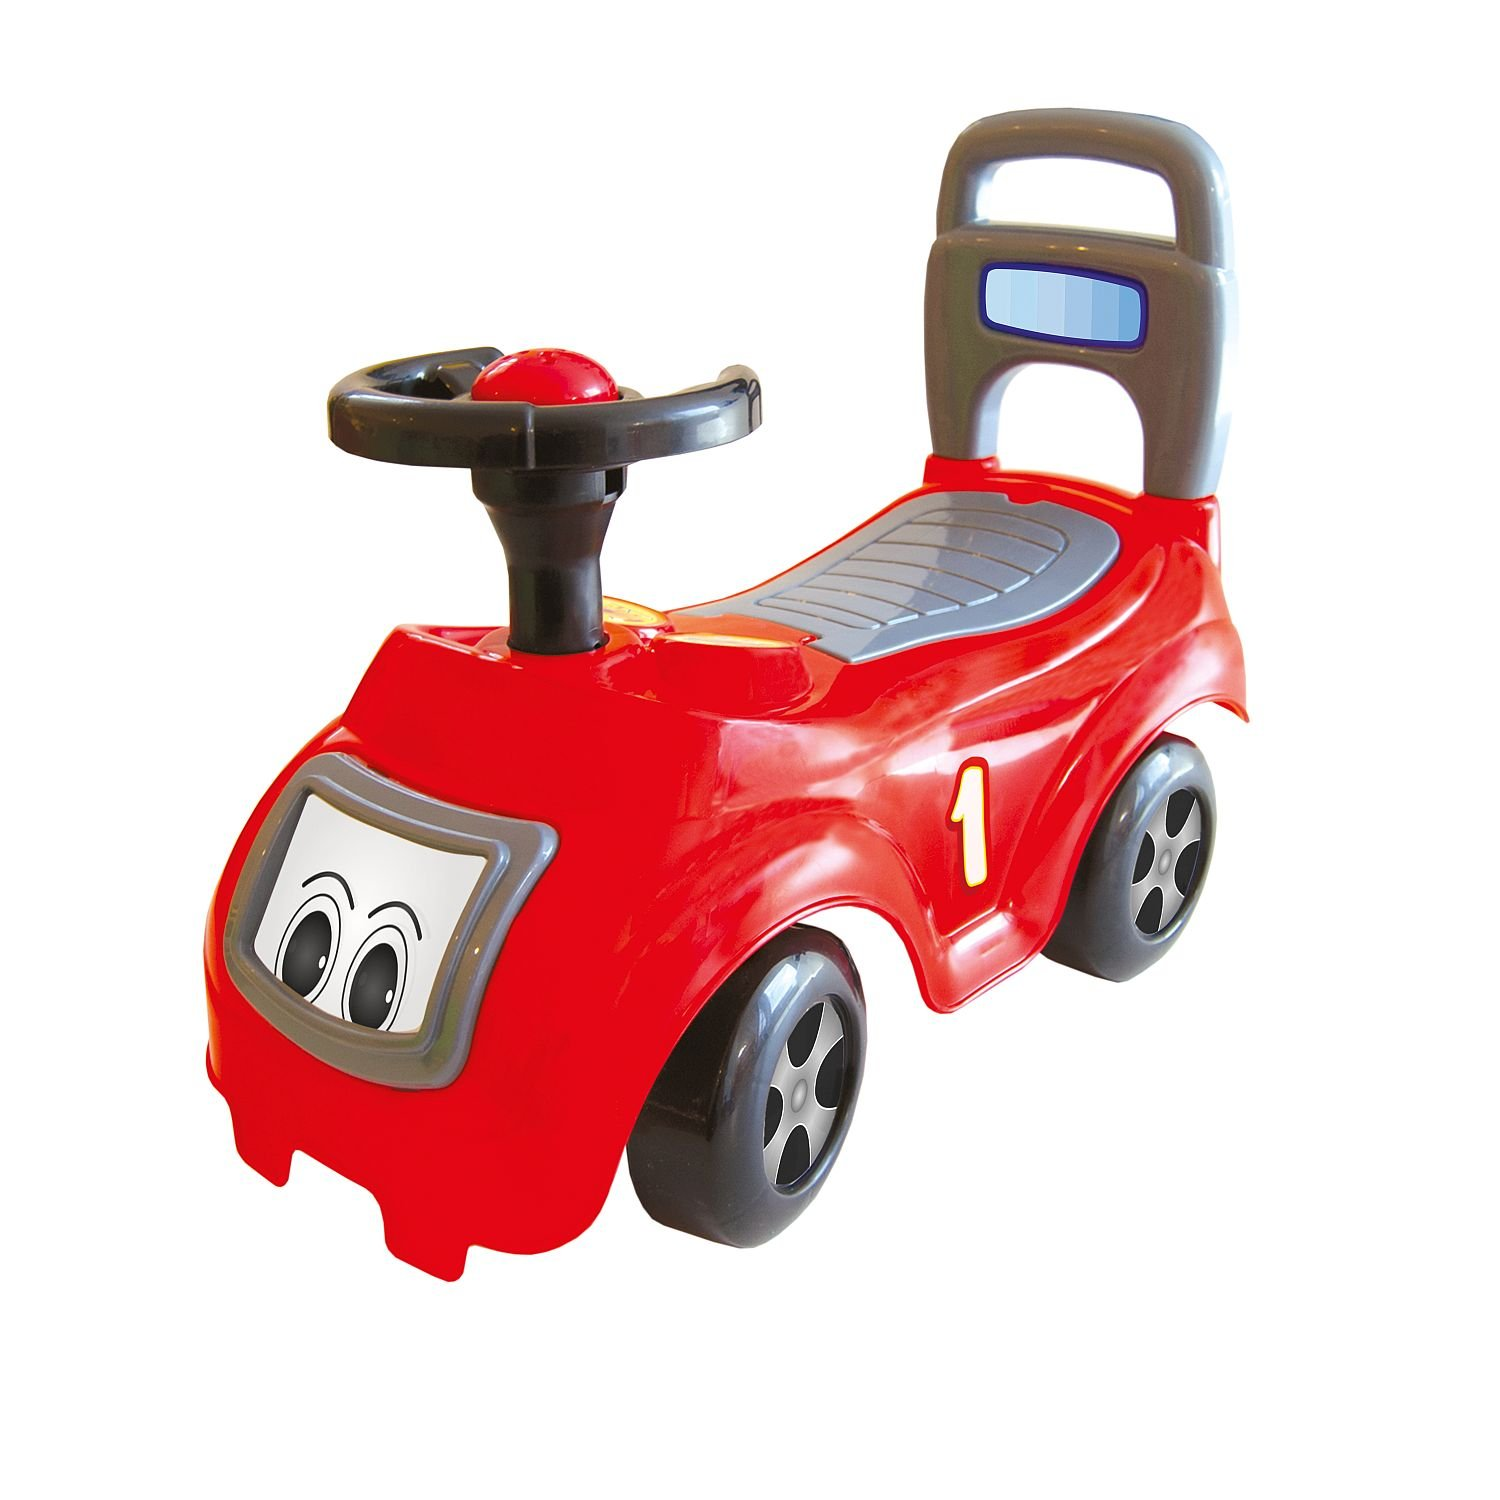 Dolu 10035309 - Baby-Slider Sit'n Ride, Approx. 50 x 38 x 64.5 cm, Red